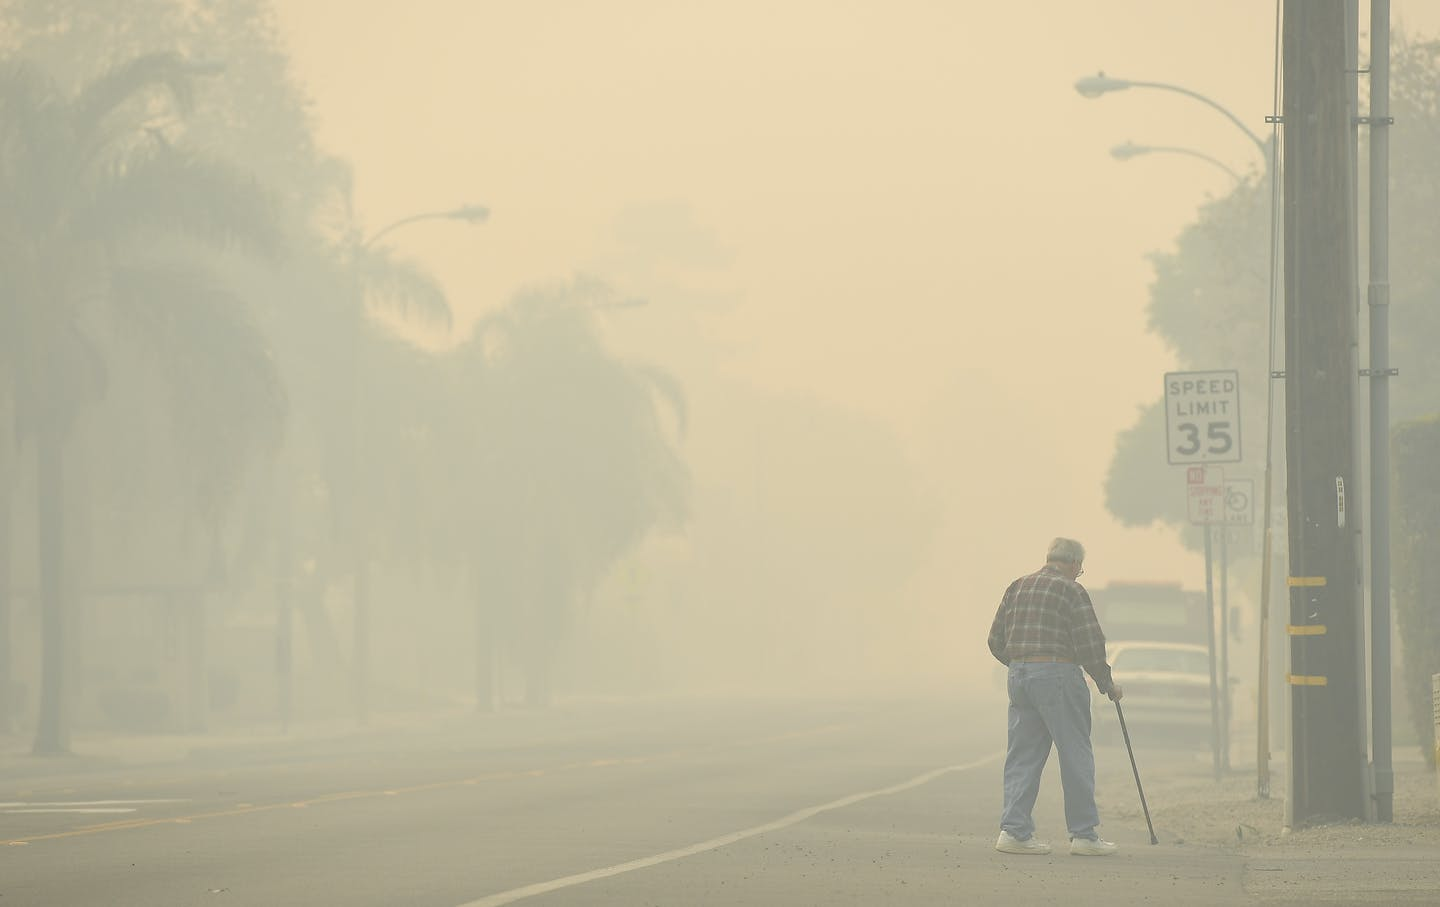 An older man with a cane crosses n empty road in smoky conditions.